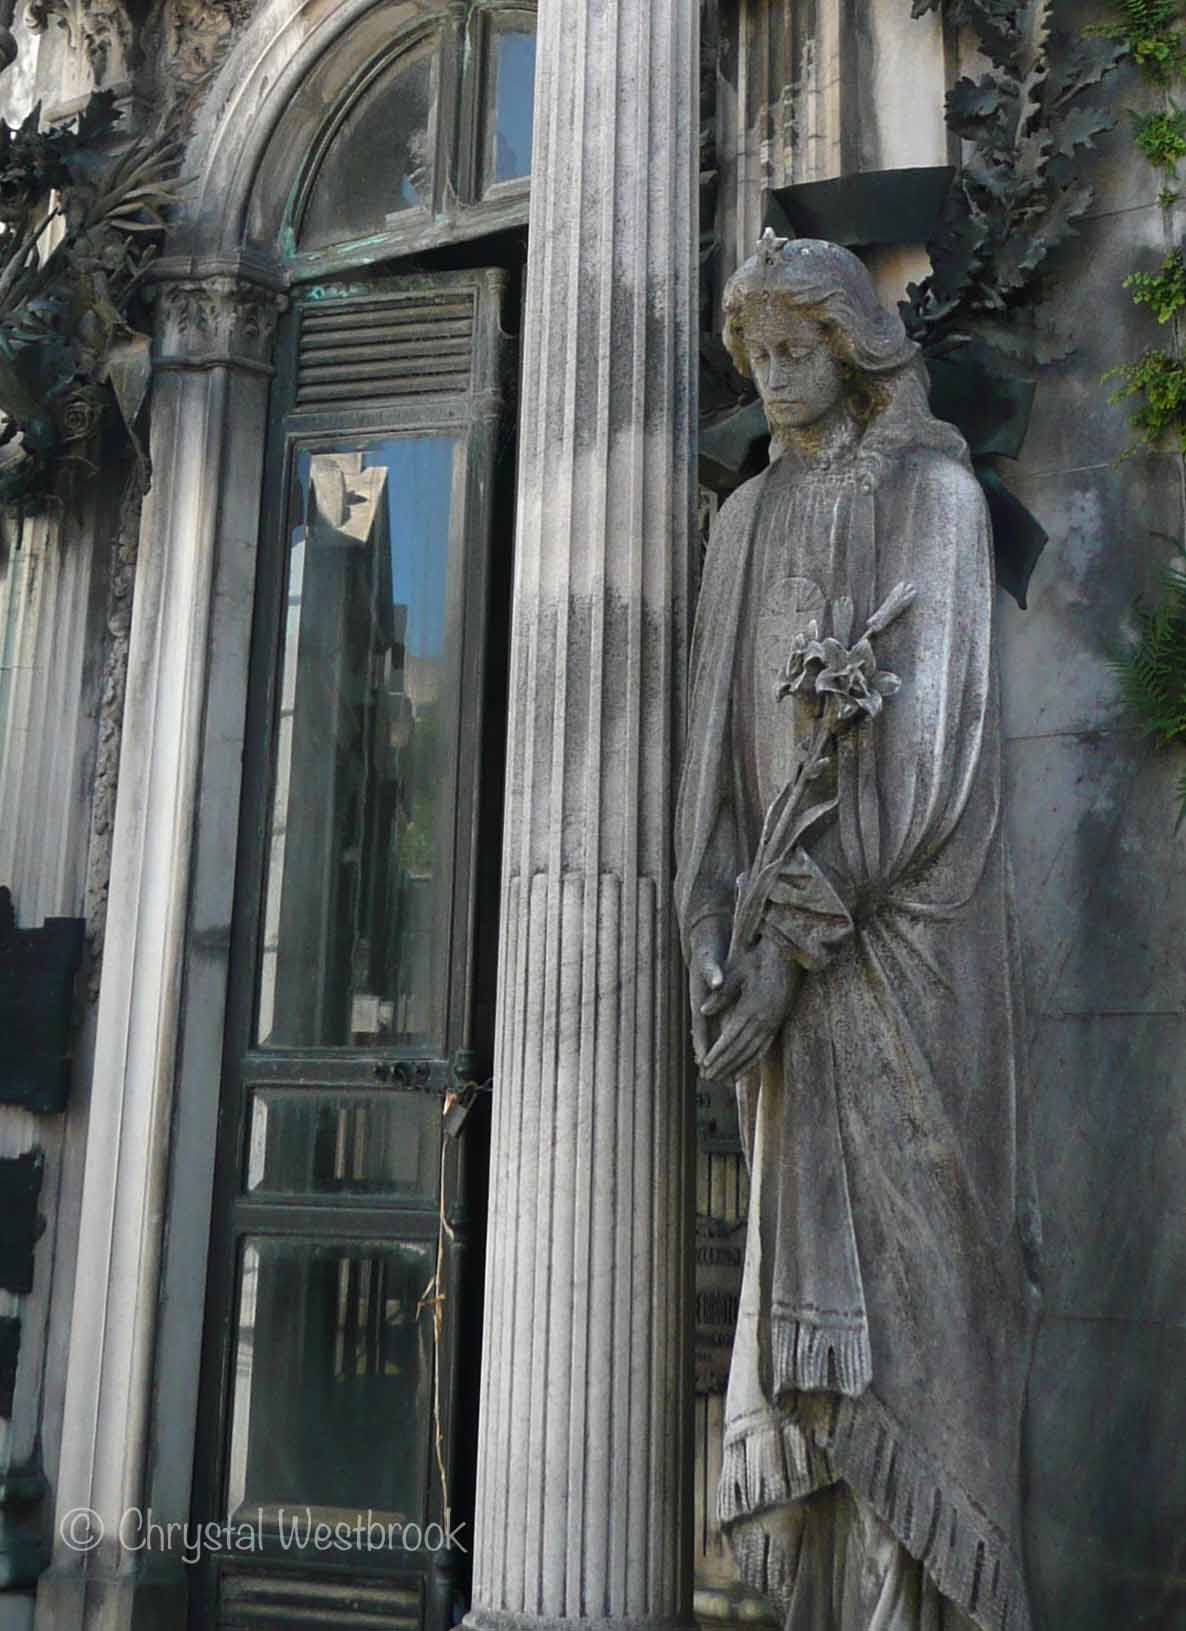 [IMAGE] Statue of angel in mourning